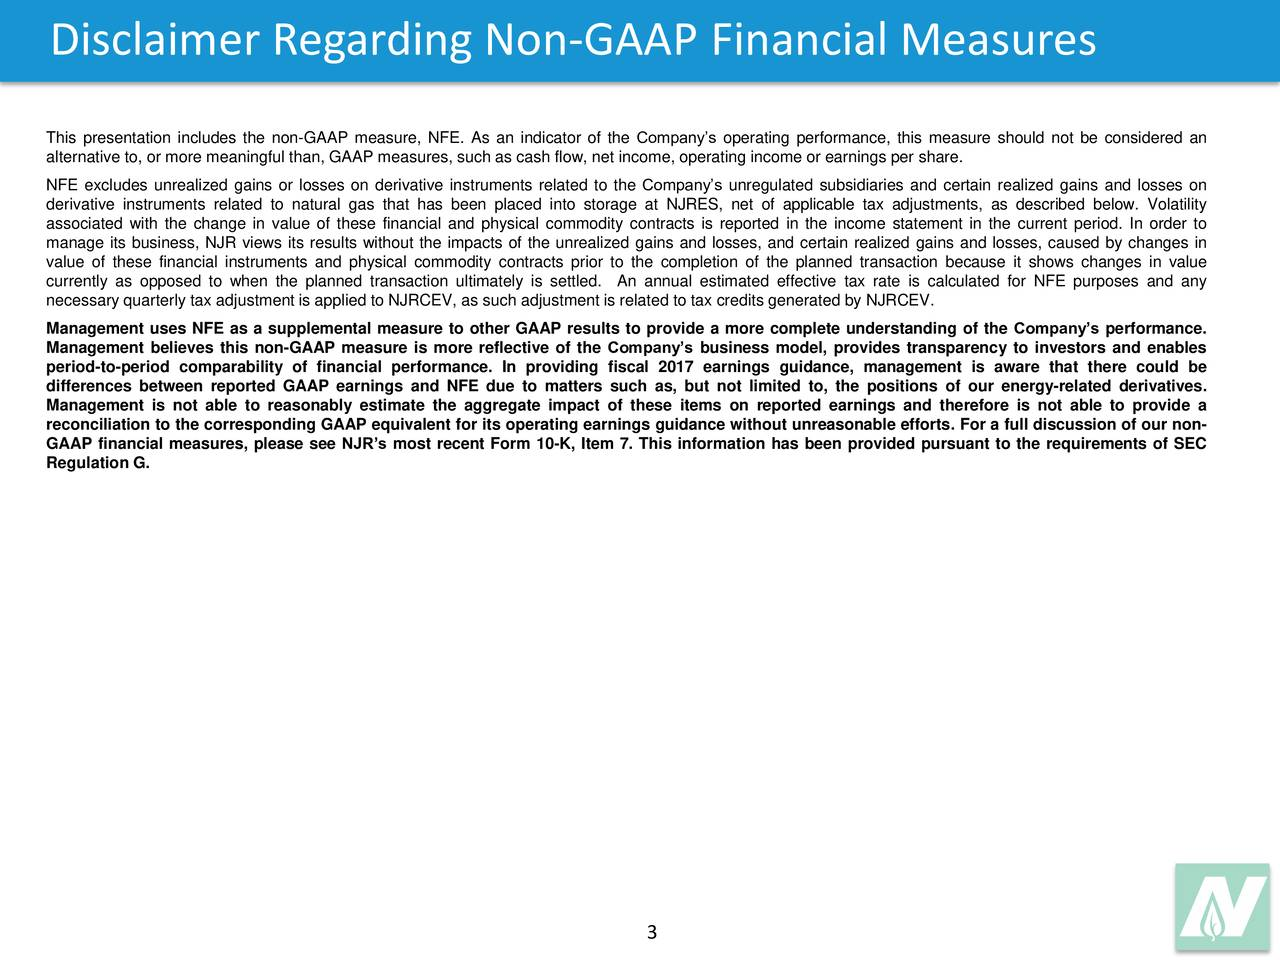 This presentation includes the non-GAAP measure, NFE. As an indicator of the Companys operating performance, this measure should not be considered an alternative to, or more meaningful than, GAAP measures, such as cash flow, net income, operating income or earnings per share. NFE excludes unrealized gains or losses on derivative instruments related to the Companys unregulated subsidiaries and certain realized gains and losses on derivative instruments related to natural gas that has been placed into storage at NJRES, net of applicable tax adjustments, as described below. Volatility associated with the change in value of these financial and physical commodity contracts is reported in the income statement in the current period. In order to manage its business, NJR views its results without the impacts of the unrealized gains and losses, and certain realized gains and losses, caused by changes in value of these financial instruments and physical commodity contracts prior to the completion of the planned transaction because it shows changes in value currently as opposed to when the planned transaction ultimately is settled. An annual estimated effective tax rate is calculated for NFE purposes and any necessary quarterly tax adjustment is applied to NJRCEV, as such adjustment is related to tax credits generated by NJRCEV. Management uses NFE as a supplemental measure to other GAAP results to provide a more complete understanding of the Companys performance. Management believes this non-GAAP measure is more reflective of the Companys business model, provides transparency to investors and enables period-to-period comparability of financial performance. In providing fiscal 2017 earnings guidance, management is aware that there could be differences between reported GAAP earnings and NFE due to matters such as, but not limited to, the positions of our energy-related derivatives. Management is not able to reasonably estimate the aggregate impact of these items on reported earn